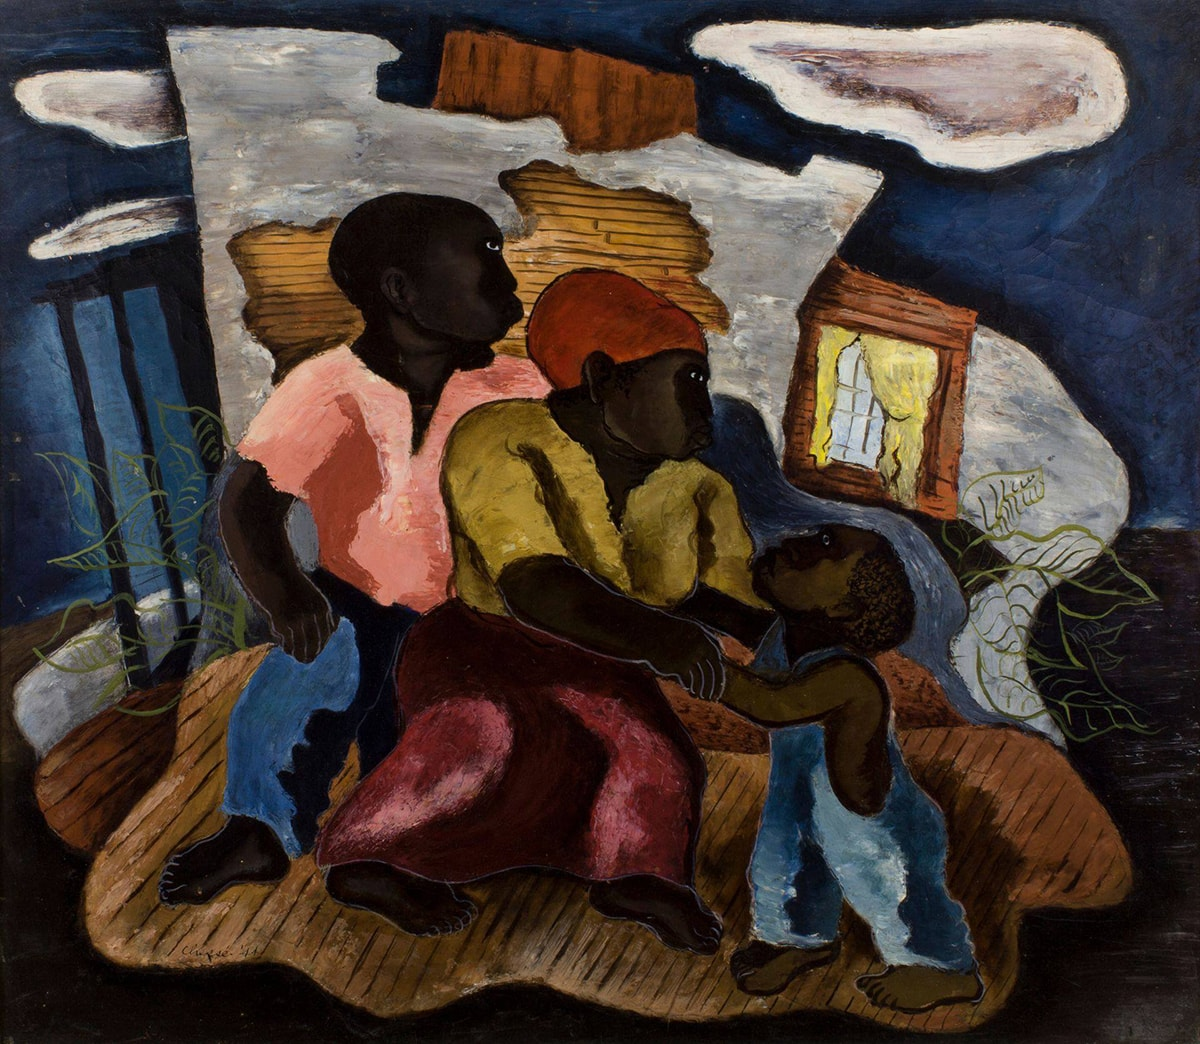 A square oil painting of a family of three dark skinned individuals: a male presenting figure, a female presenting figure and a child figure. The figures are highly stylized with thick, truncated bodies. Each has their head turned to the side showing a prominent jawline and flat eyes placed high on and close to the bridge of the nose. At center is the mother figure, she reaches out her arms grasping the child's arm who stands on the right. The mother wears a yellow top, red skirt and an orange-red head covering. The child wears blue overalls and stretches his arms out to its mother. His head is tilted up, he has short curly hair with scalp peeking through. On the left the father figure stands slightly behind the mother in an opened neck pink shirt and blue pants. All three figures are barefoot. Brushwork appears thick, layered and rough. The family stands in a surreal setting: the brown floor they stand on almost appears to be a raft on which they float, the interior wall behind suggests a plaster wall with exposed wood lathe. A window with yellow curtains appears at right. The background is depicted as a deep blue sky with several white clouds. On either side of the family appear the outlines of bunches of green leaves. The painting is in a white square frame that shows exposed wood, looking scraped and worn.